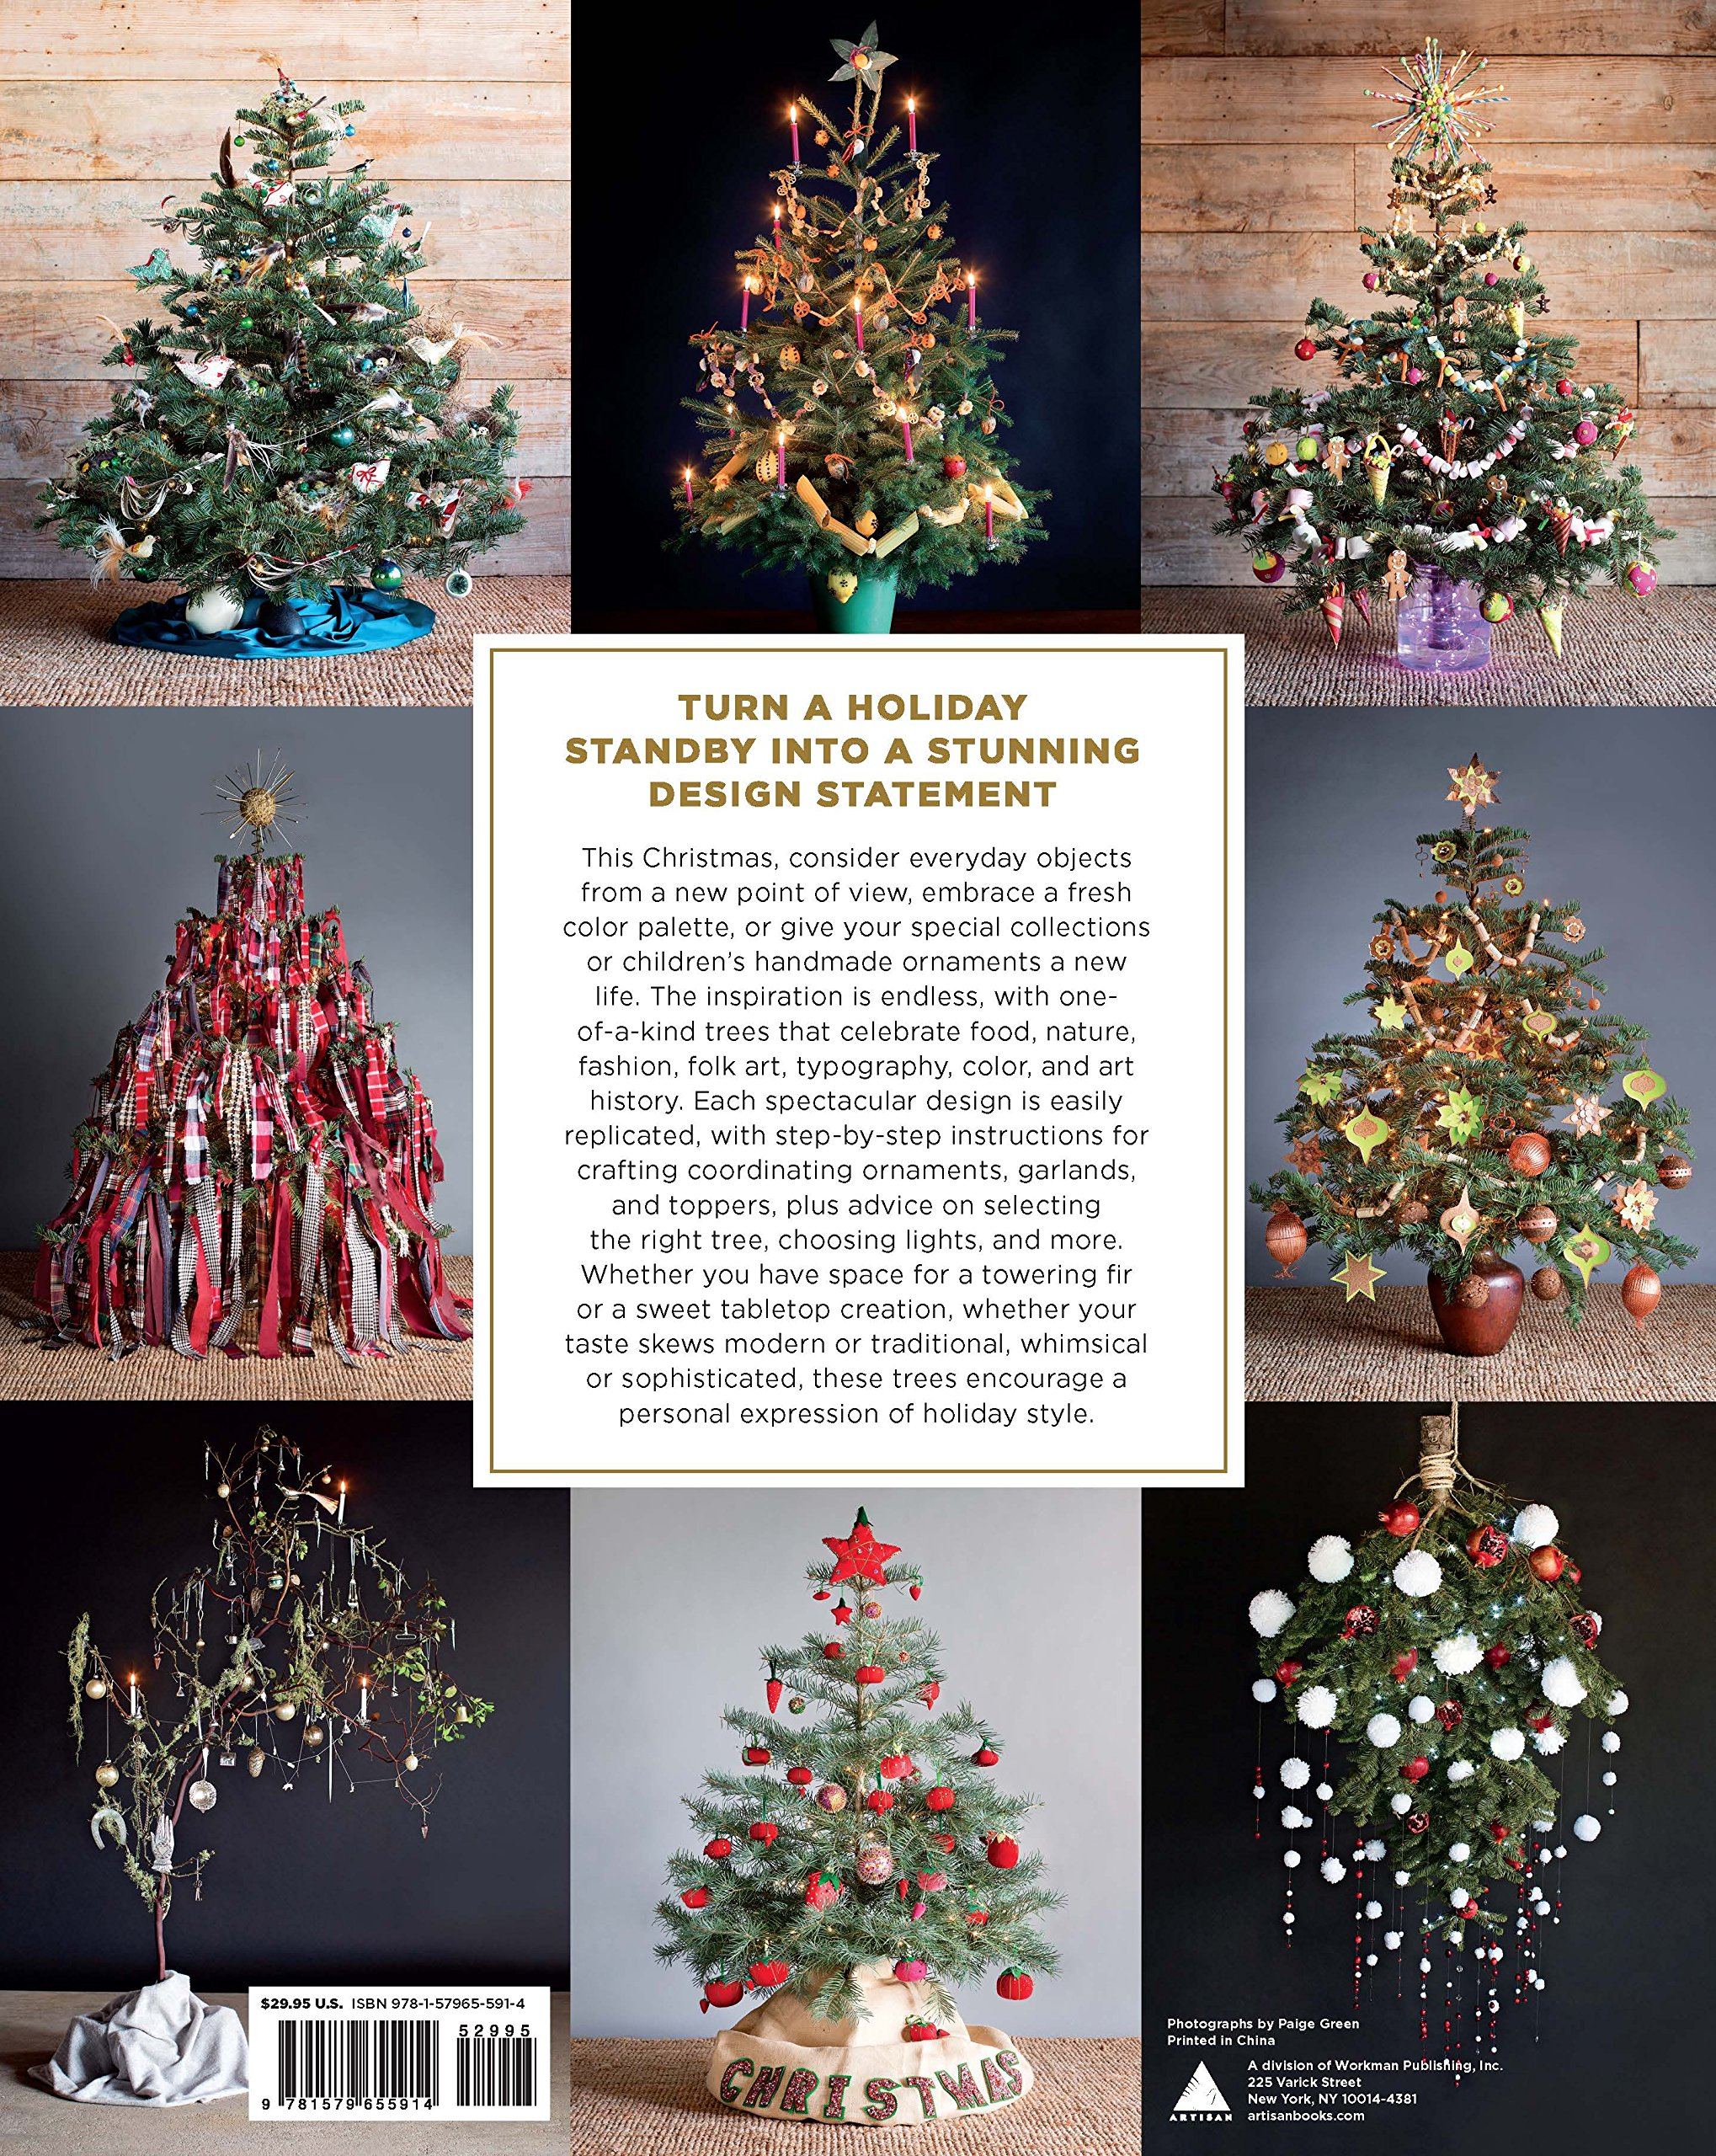 The New Christmas Tree: 24 Dazzling Trees and Over 100 Handcrafted ...